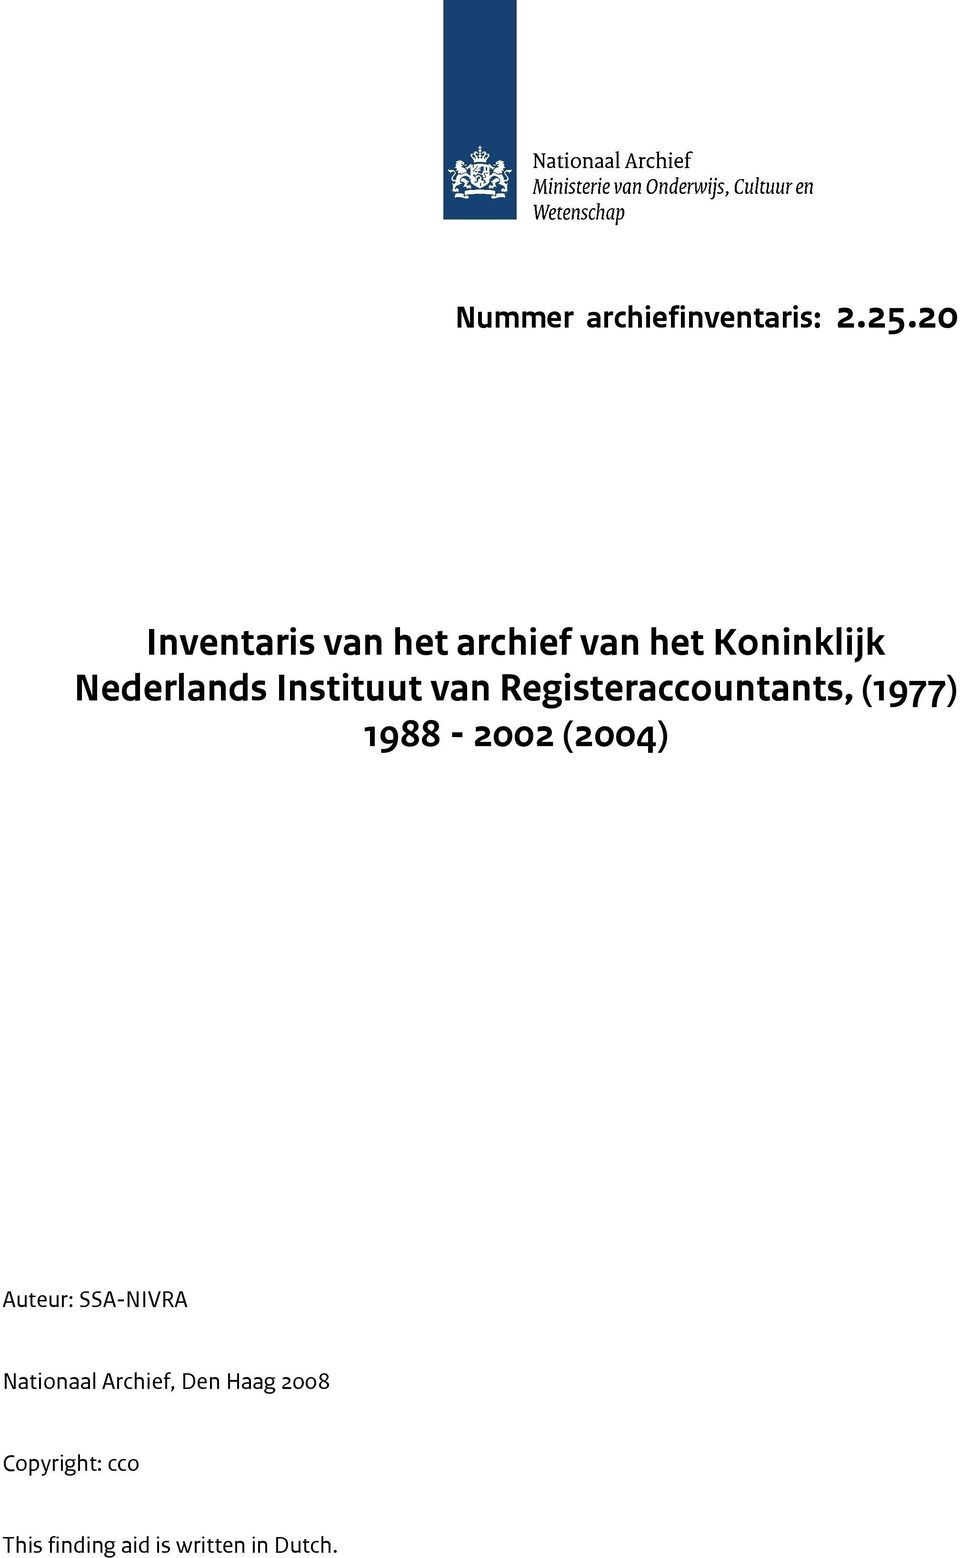 Instituut van Registeraccountants, (1977) 1988-2002 (2004)